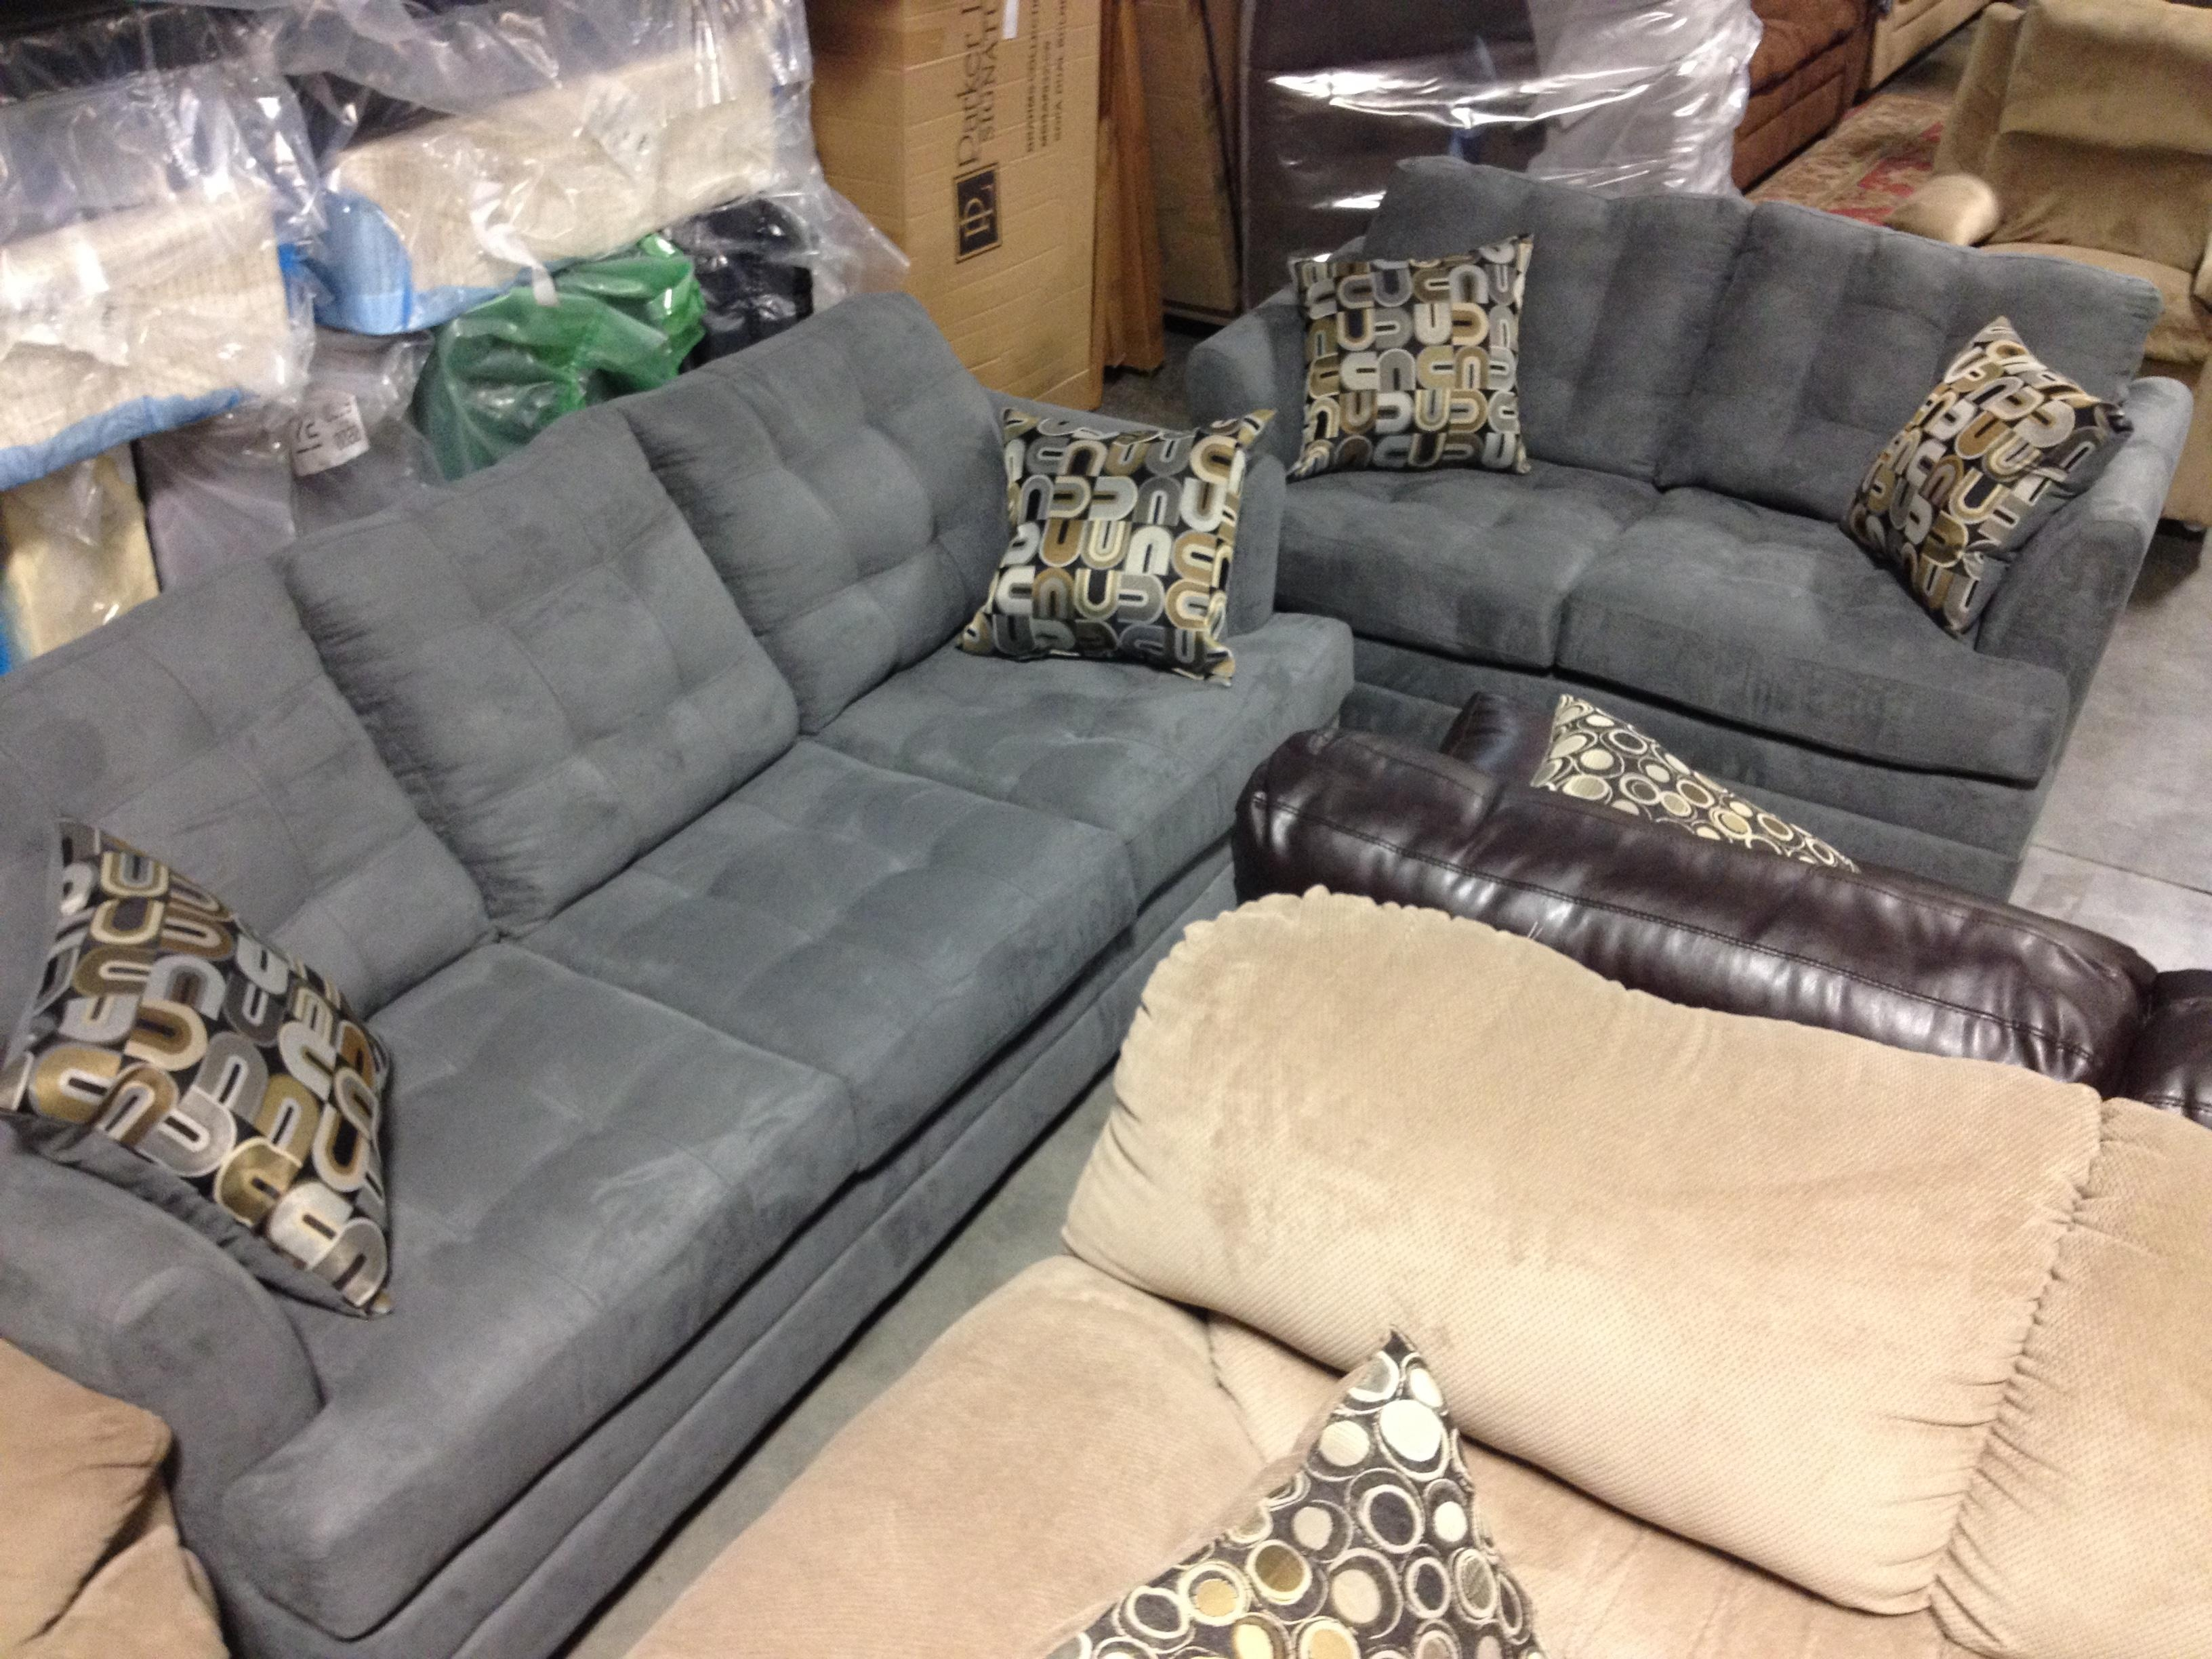 April 2017 – Chico Furniture Direct 4 U Intended For Simmons Microfiber Sofas (View 18 of 20)